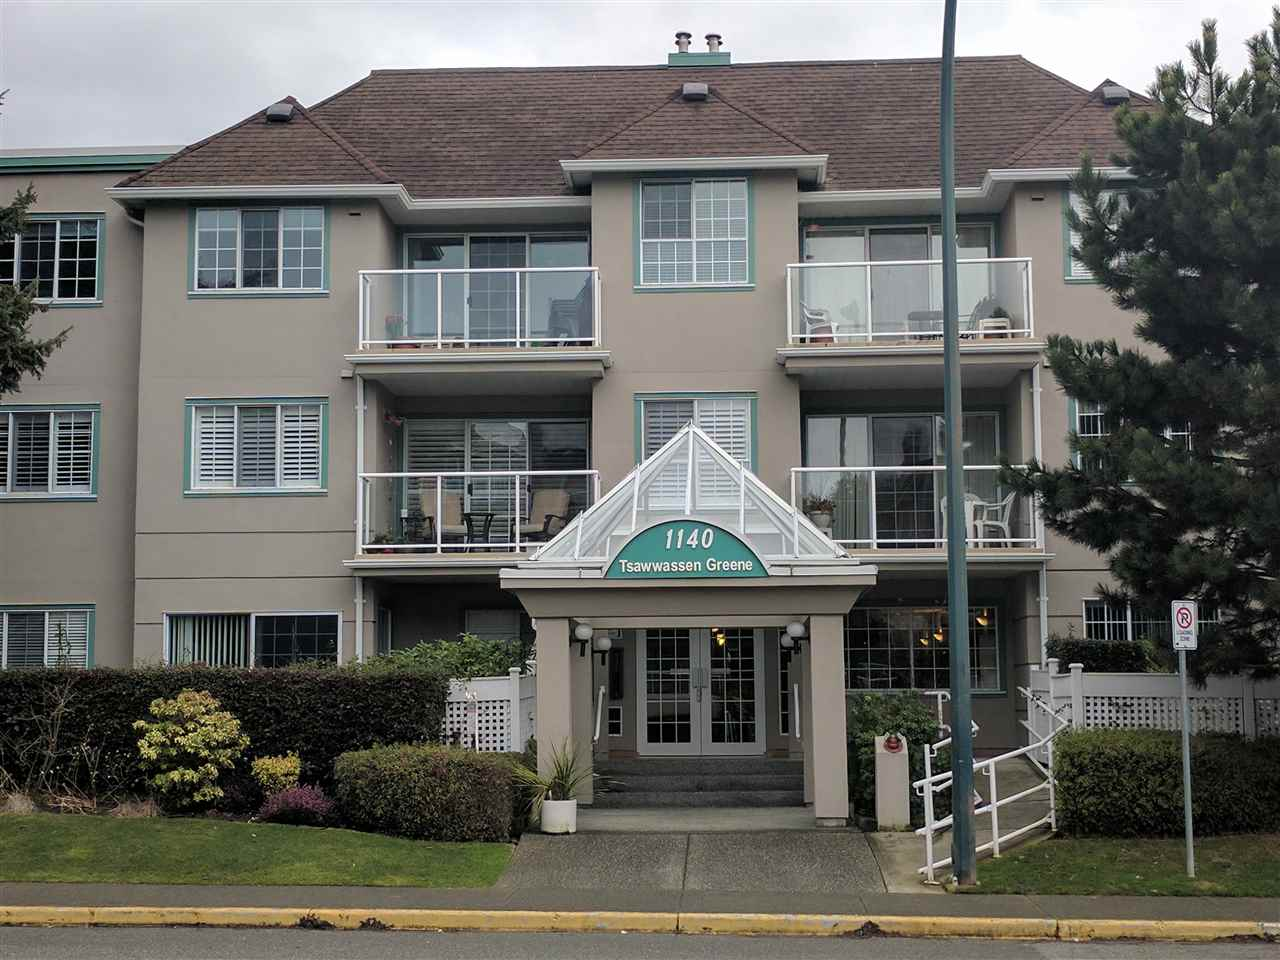 "Main Photo: 209 1140 55 Street in Delta: Tsawwassen Central Condo for sale in ""TSAWWASSEN GREENE"" (Tsawwassen)  : MLS®# R2149066"